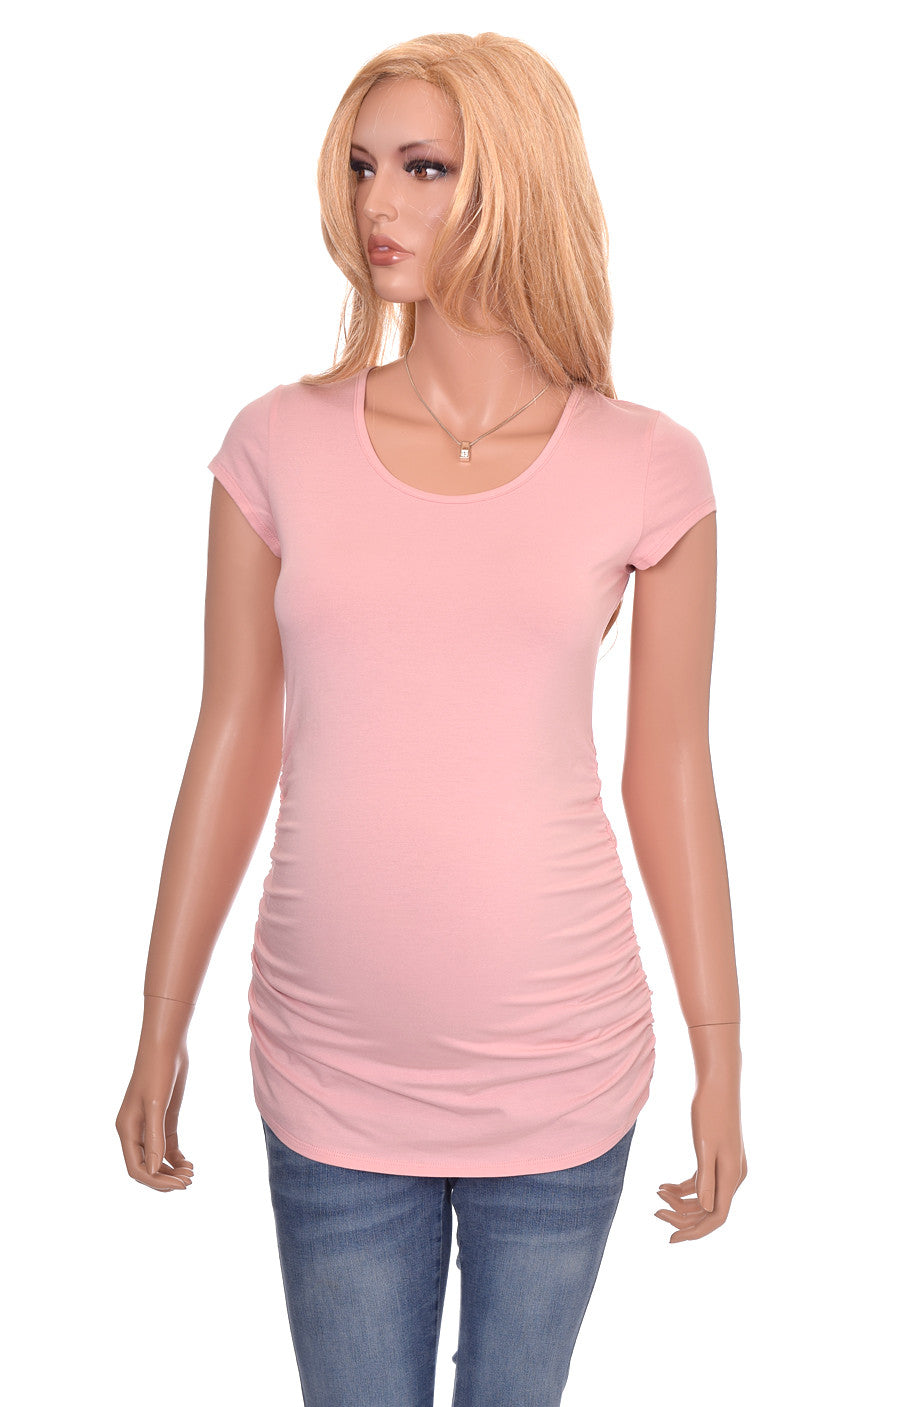 Wholesale maternity blanks shirts tshirts pink short sleeve cotton modal